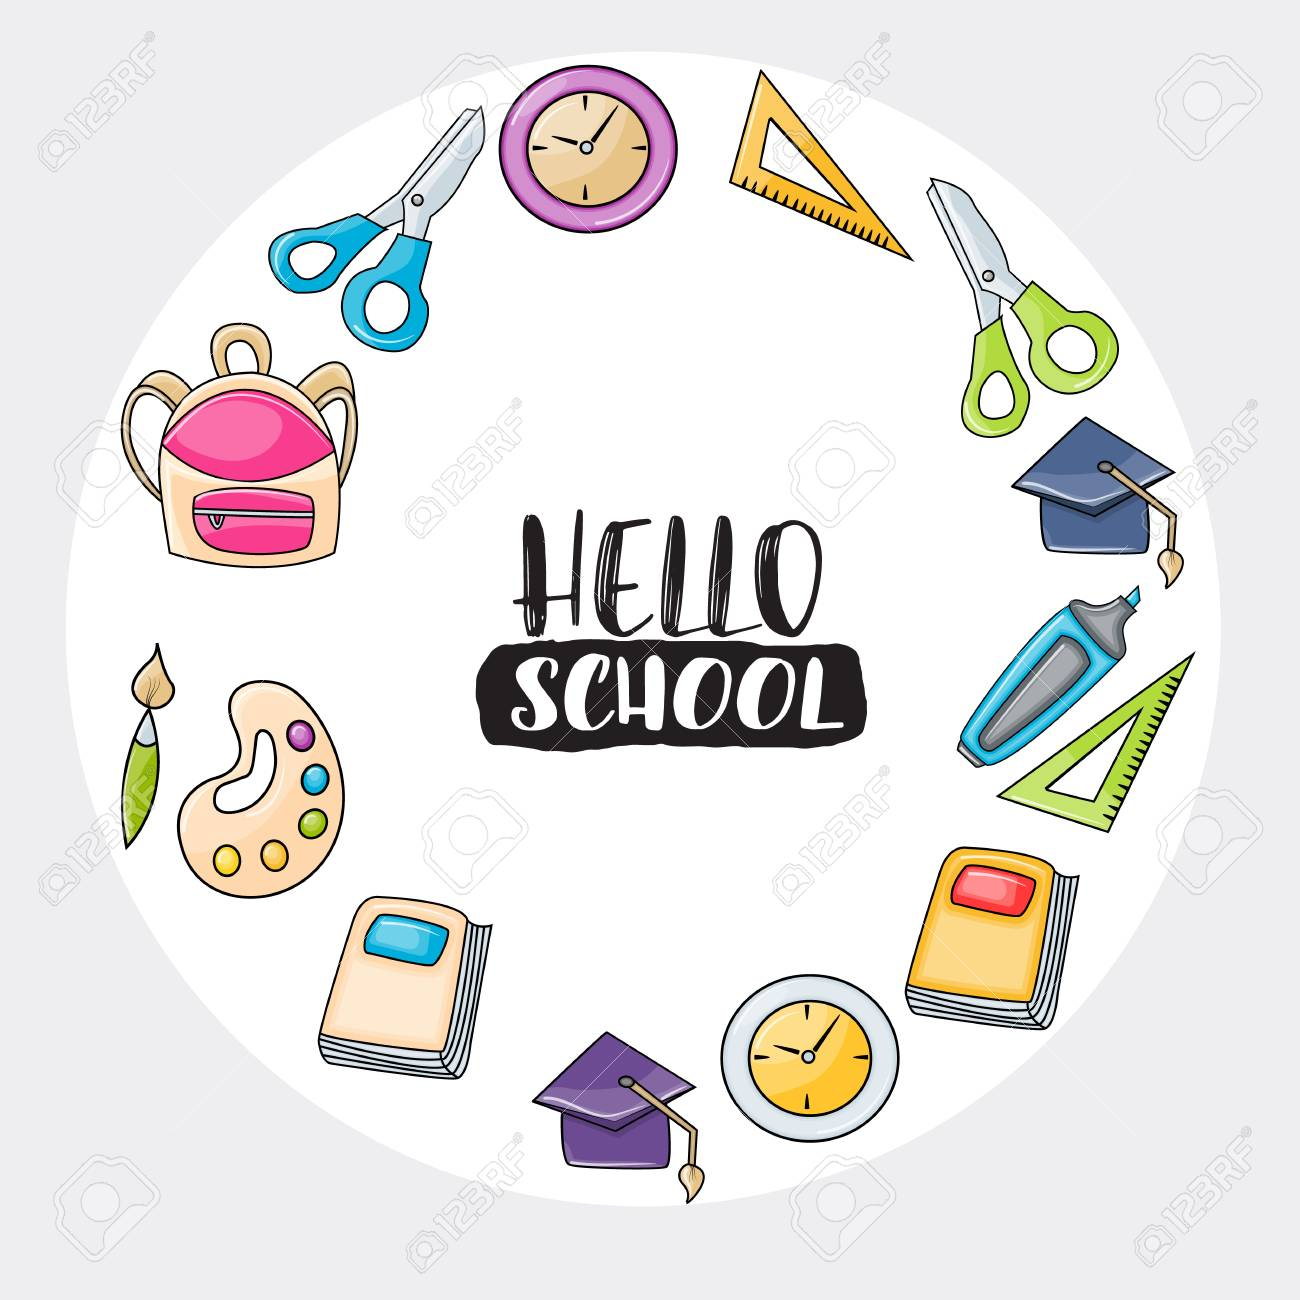 Hello school doodle clip art greeting card. Cartoon vector illustration...